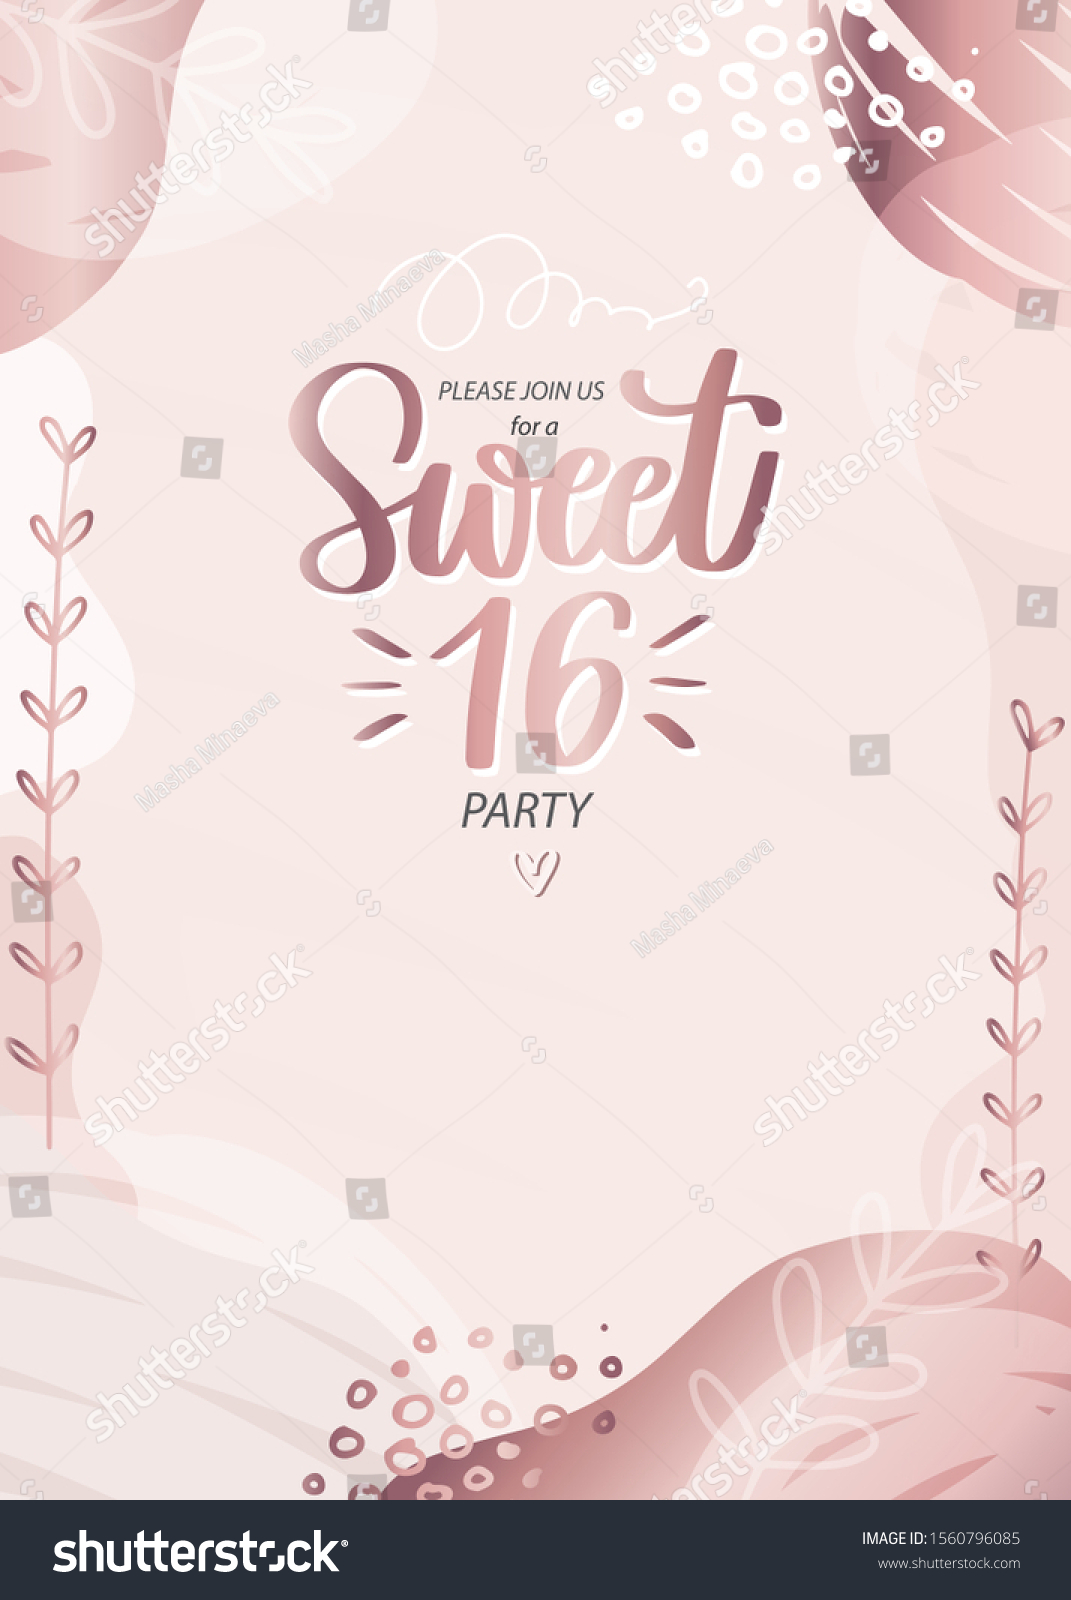 https www shutterstock com image vector sweet sixteen party invitation 16th birthday 1560796085